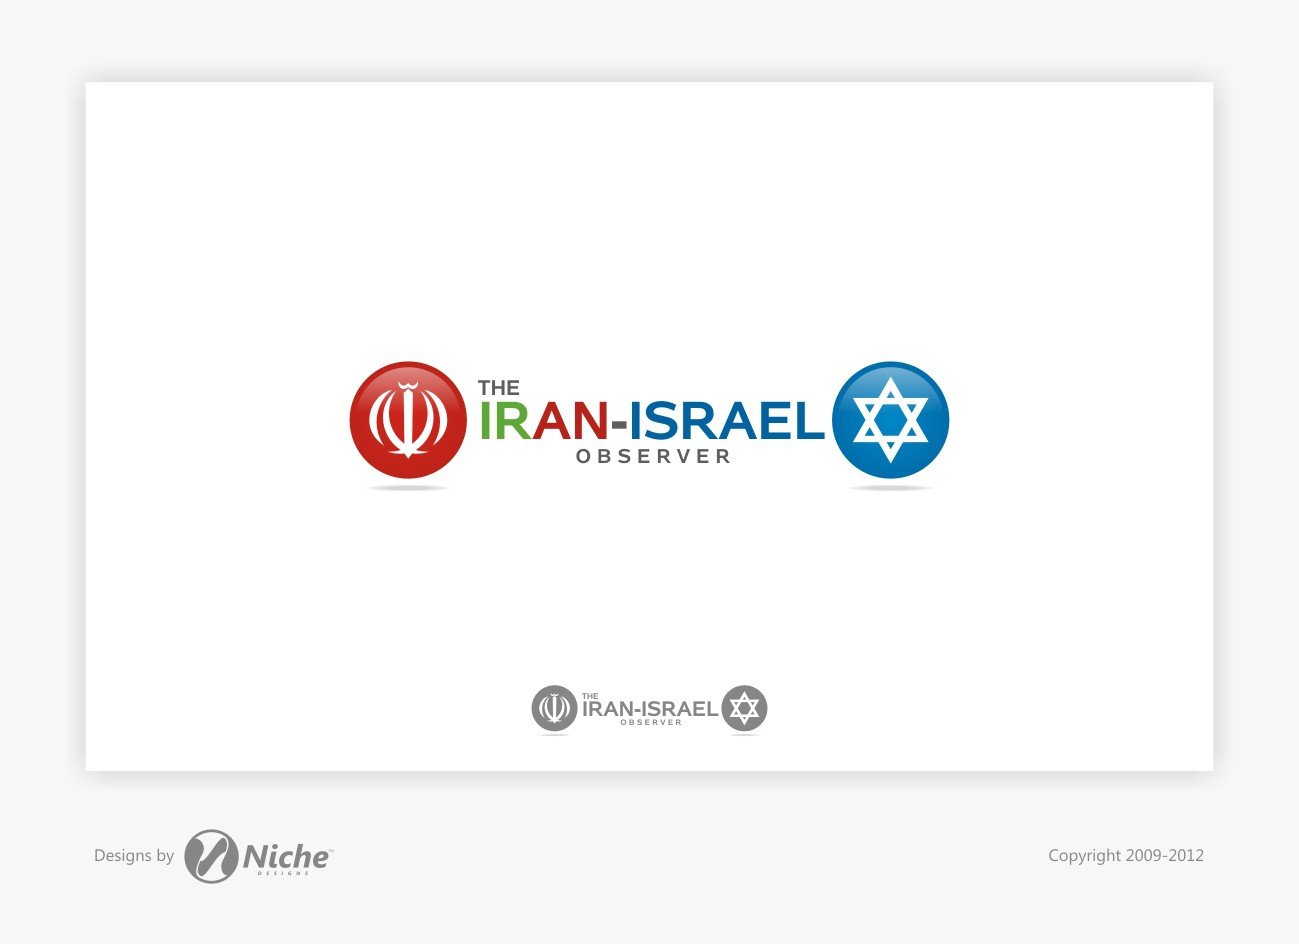 The Iran Israel Observer  needs a new logo